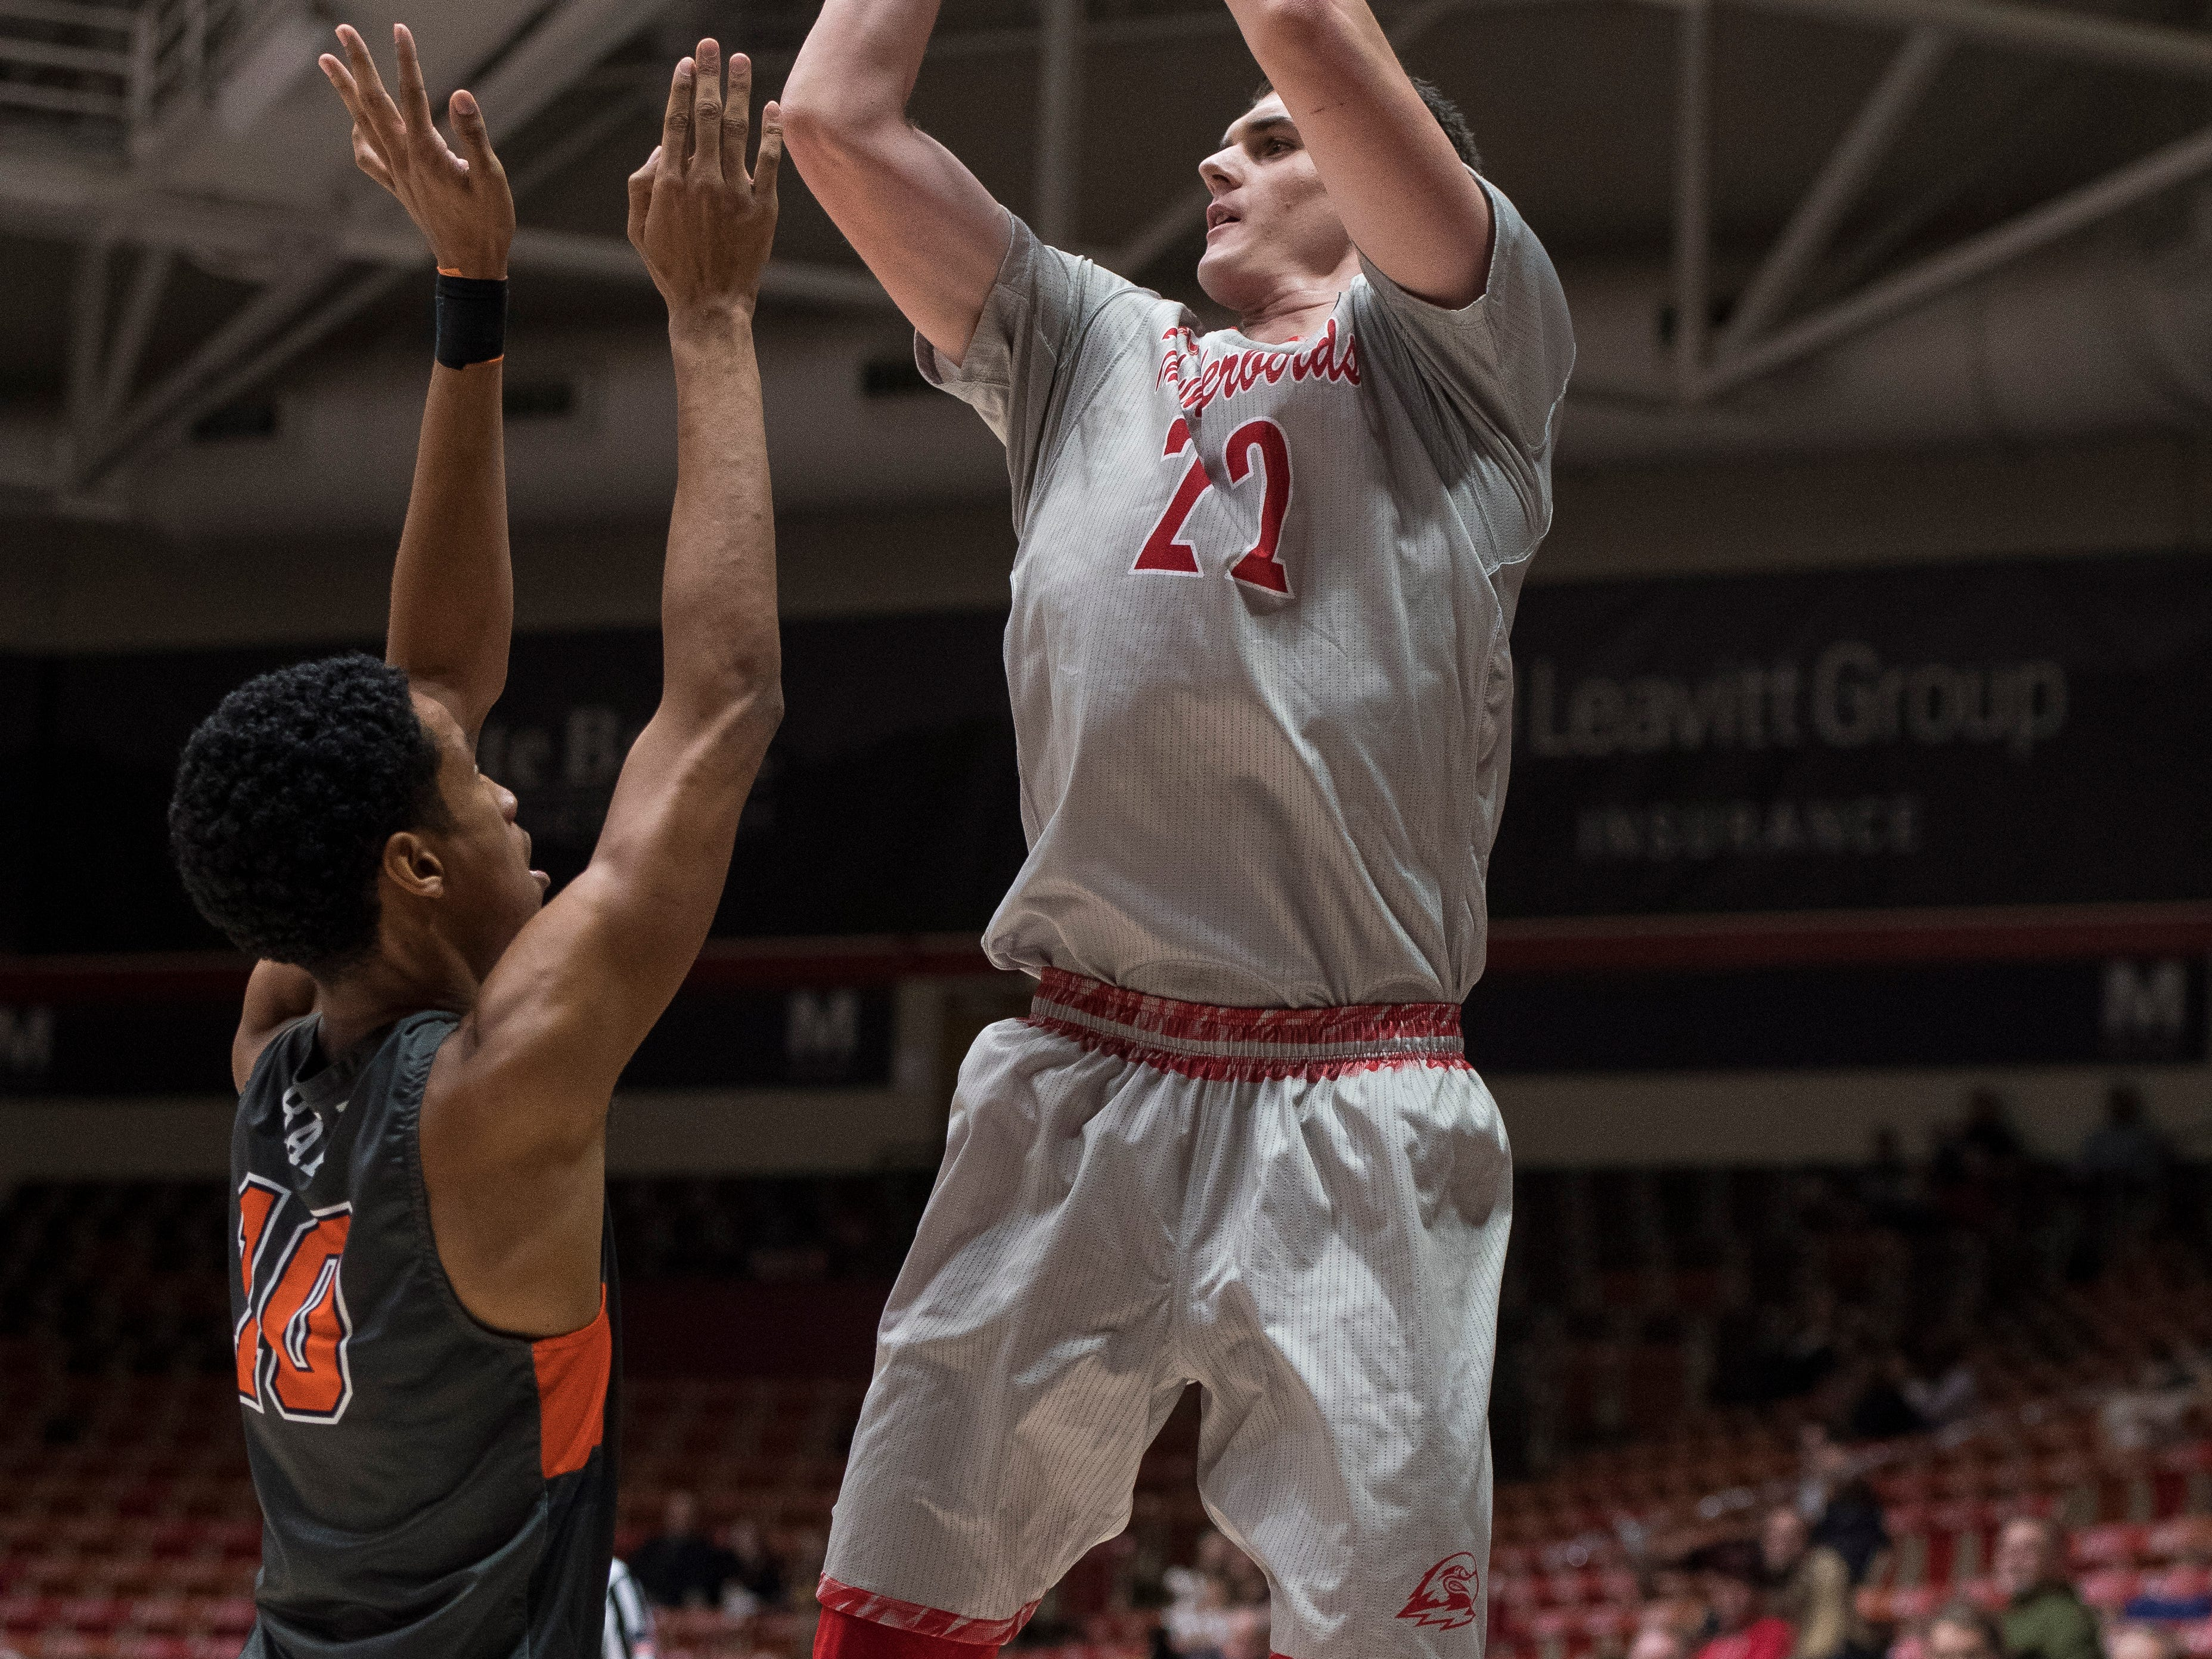 Southern Utah University junior Ivan Madunic (22) takes a shot against Pepperdine University in the America First Event Center Saturday, December 15, 2018. SUU won in overtime, 78-69.